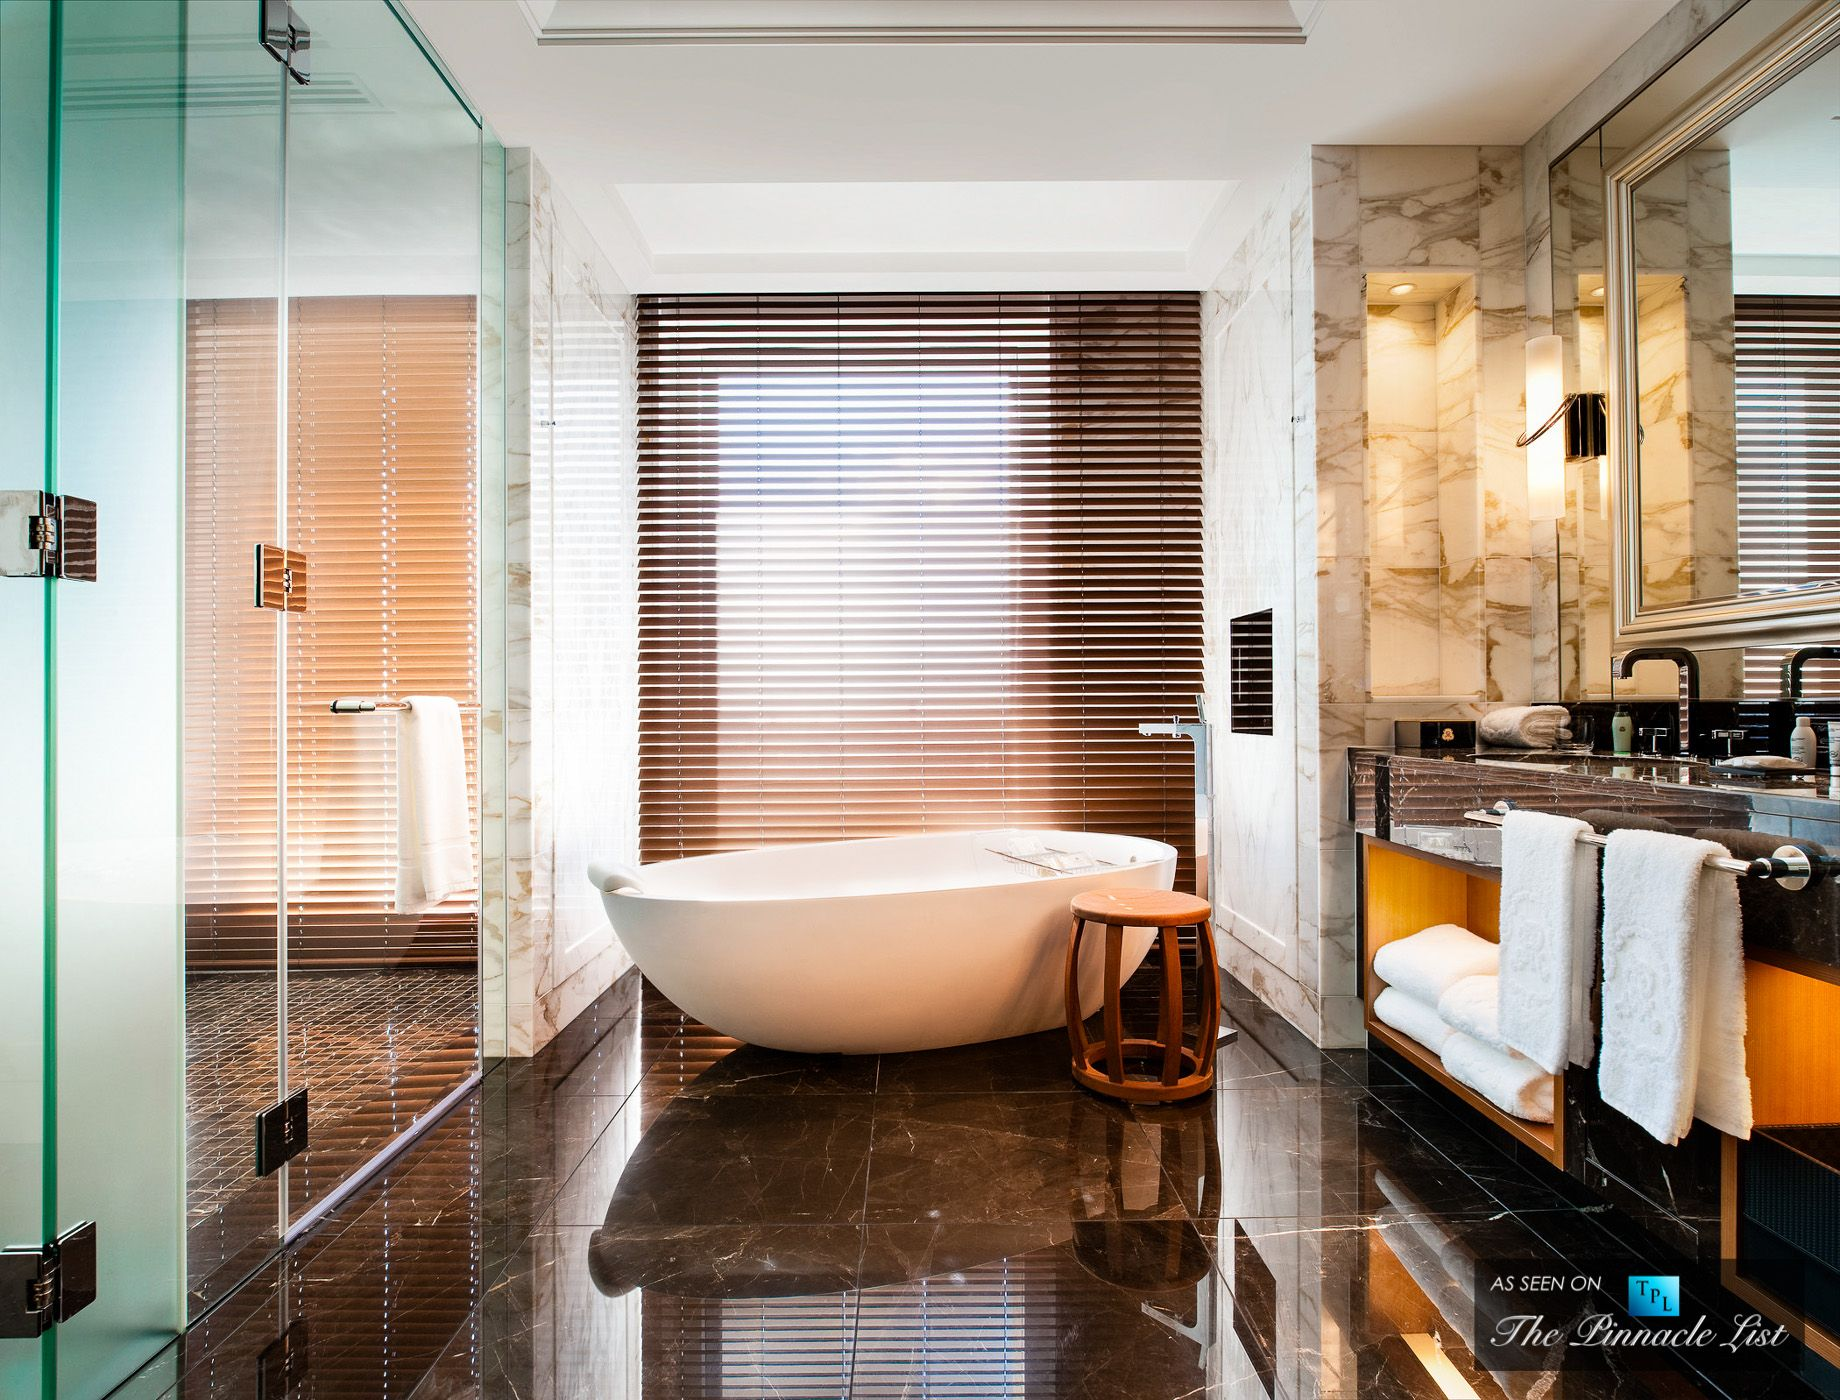 Luxury hotel bathrooms - Image Result For Luxurious Hotel Bathrooms